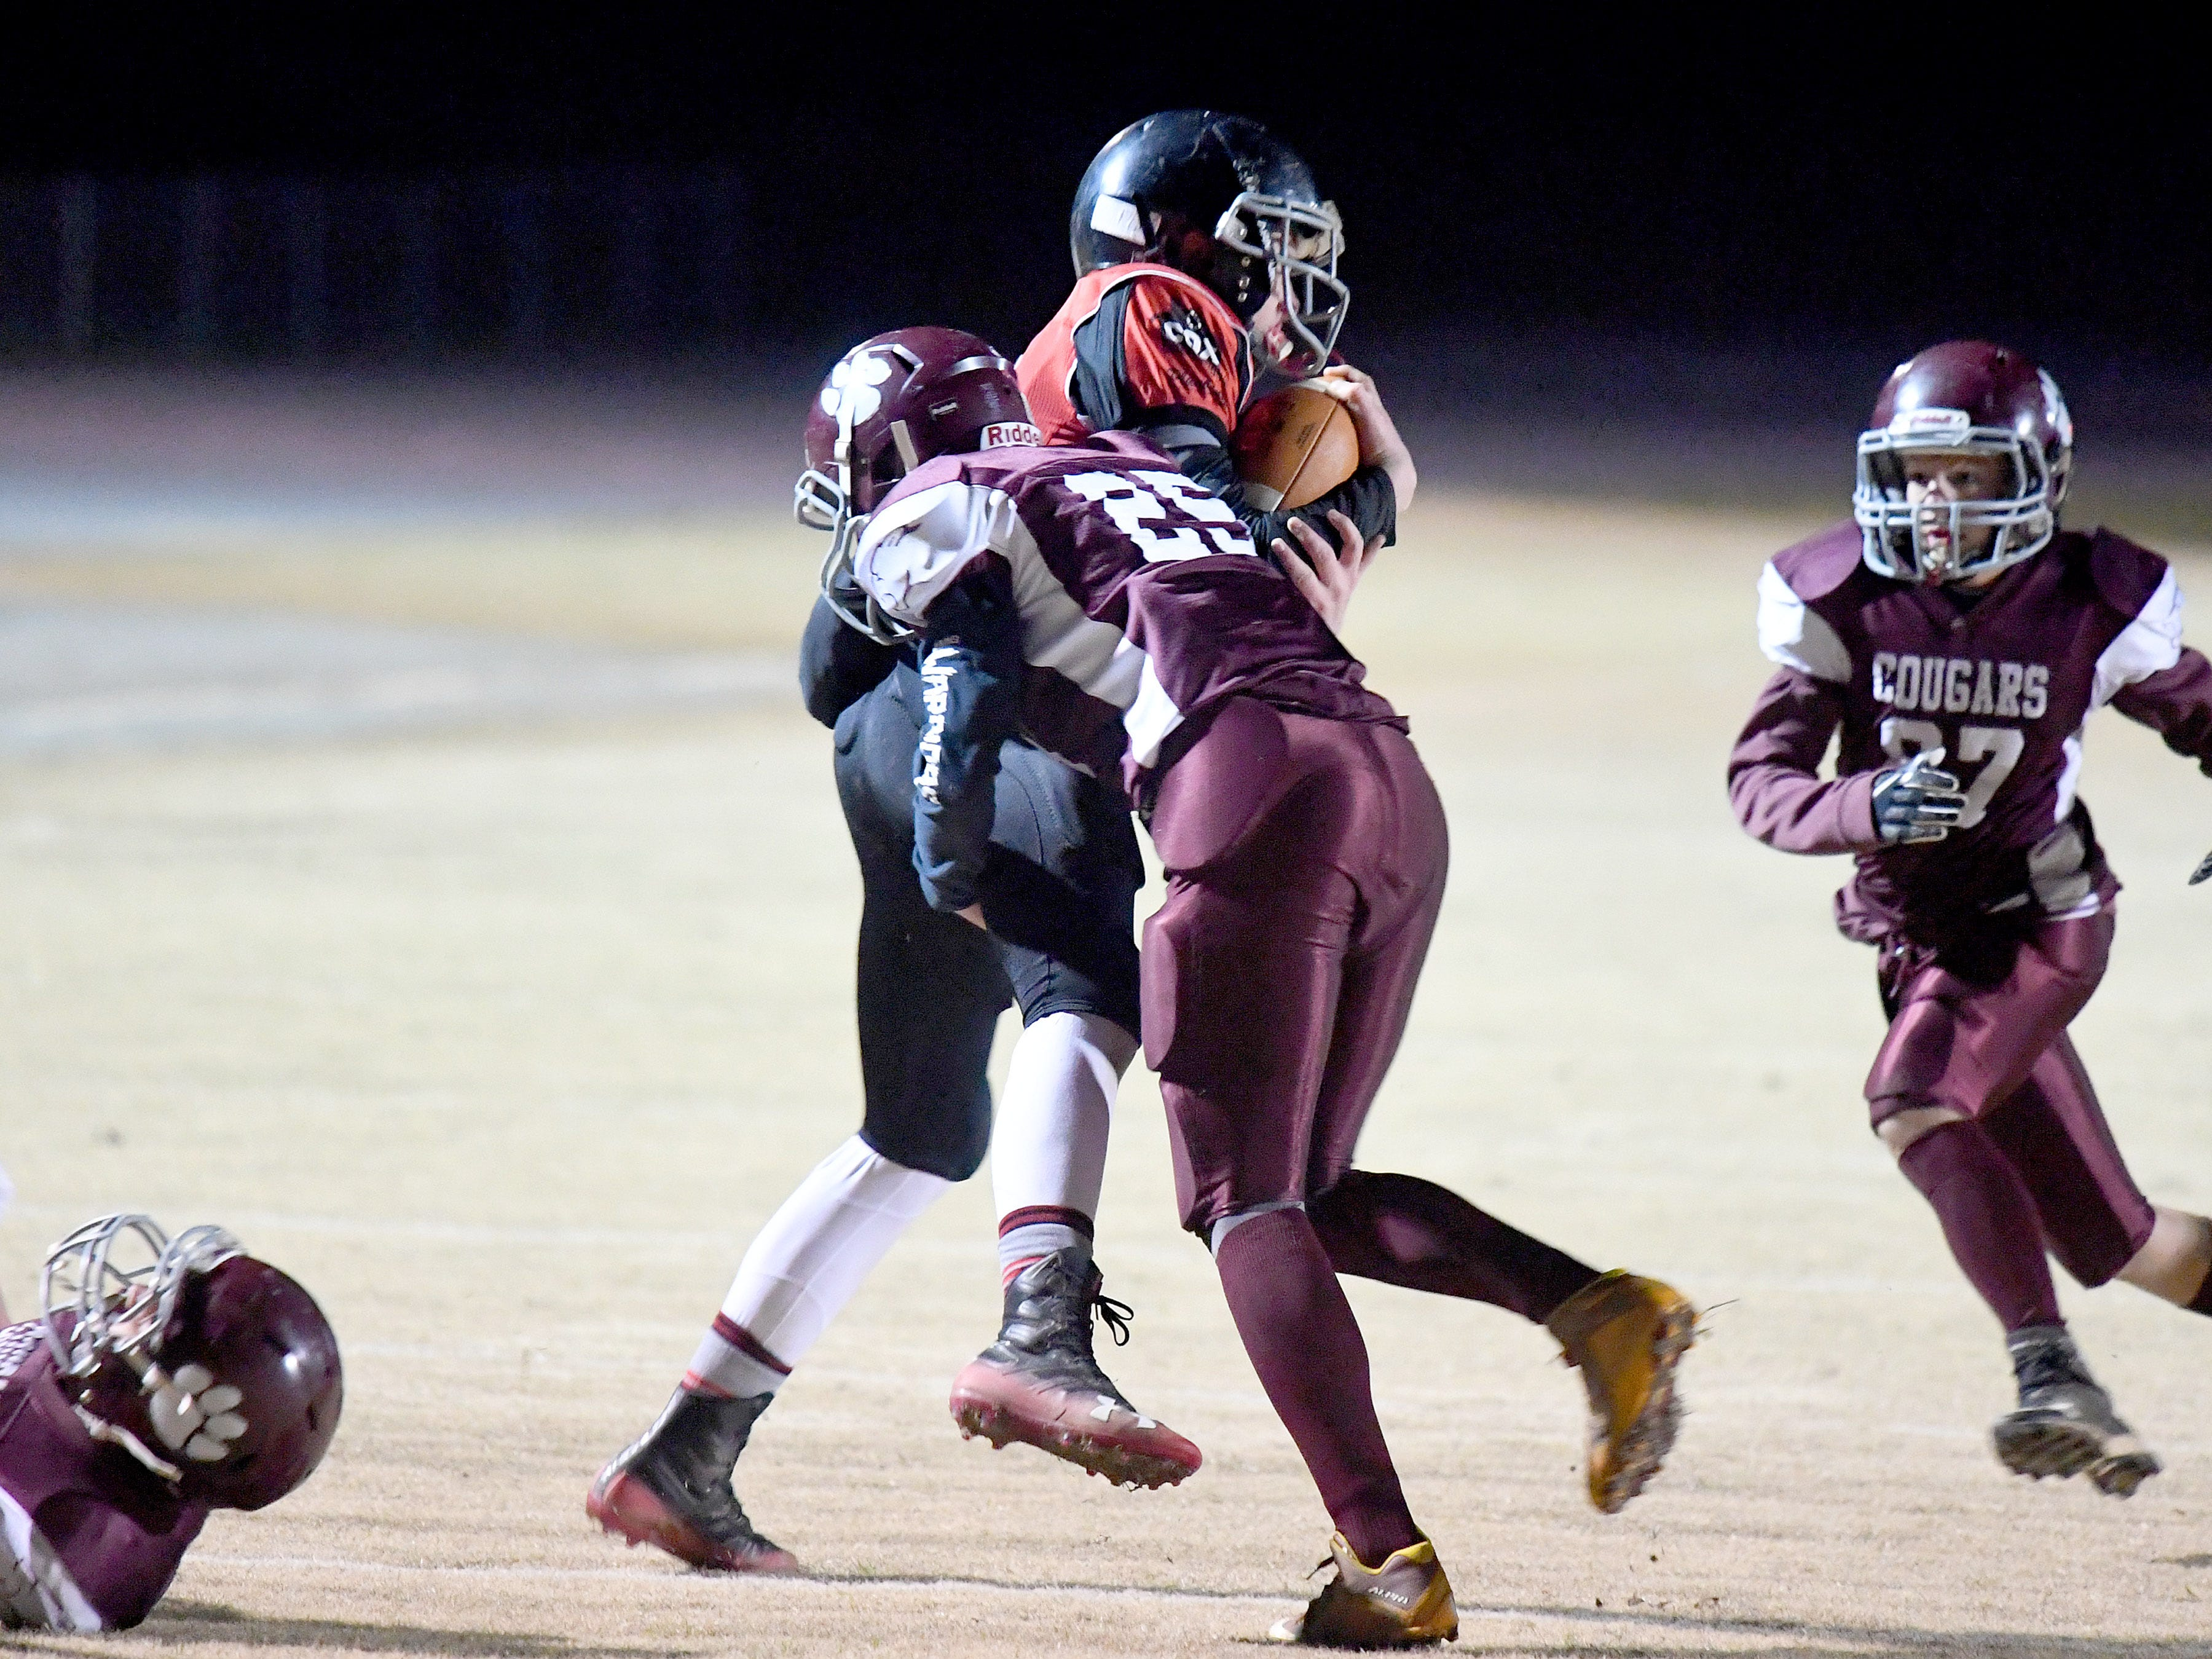 Riverheads' Cayden Cook Cash has the ball as Stuarts Draft's Kyle Coffey makes the tackle during the Augusta County Quarterback Club Seniors Super Bowl in Fishersville on Sunday, Nov. 11, 2018.  RIverheads defeats Stuarts Draft, 38-6.